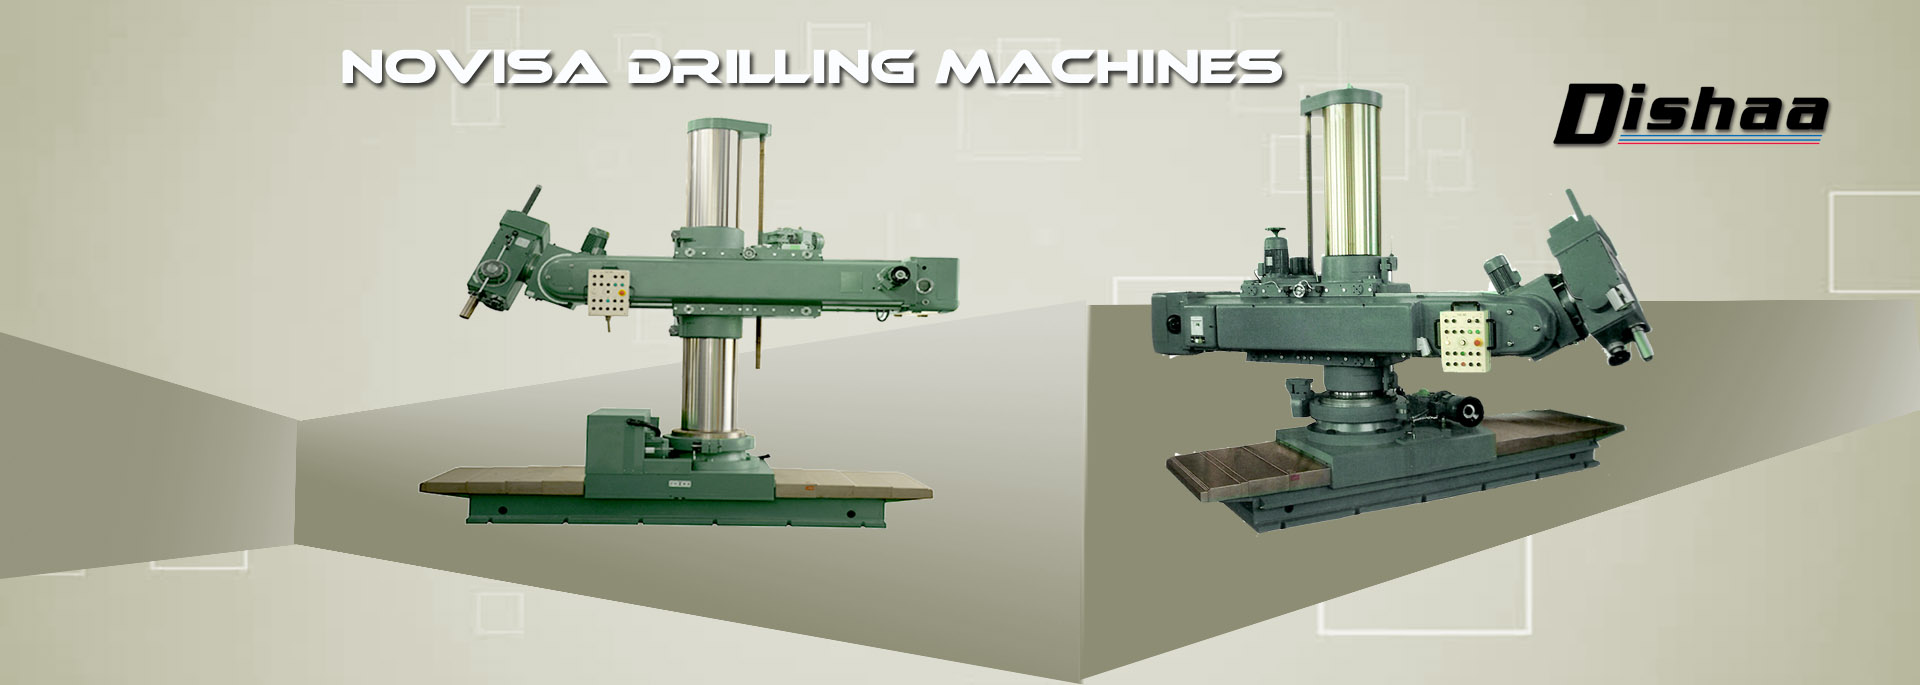 NOVISA-DRILLING-MACHINE-1